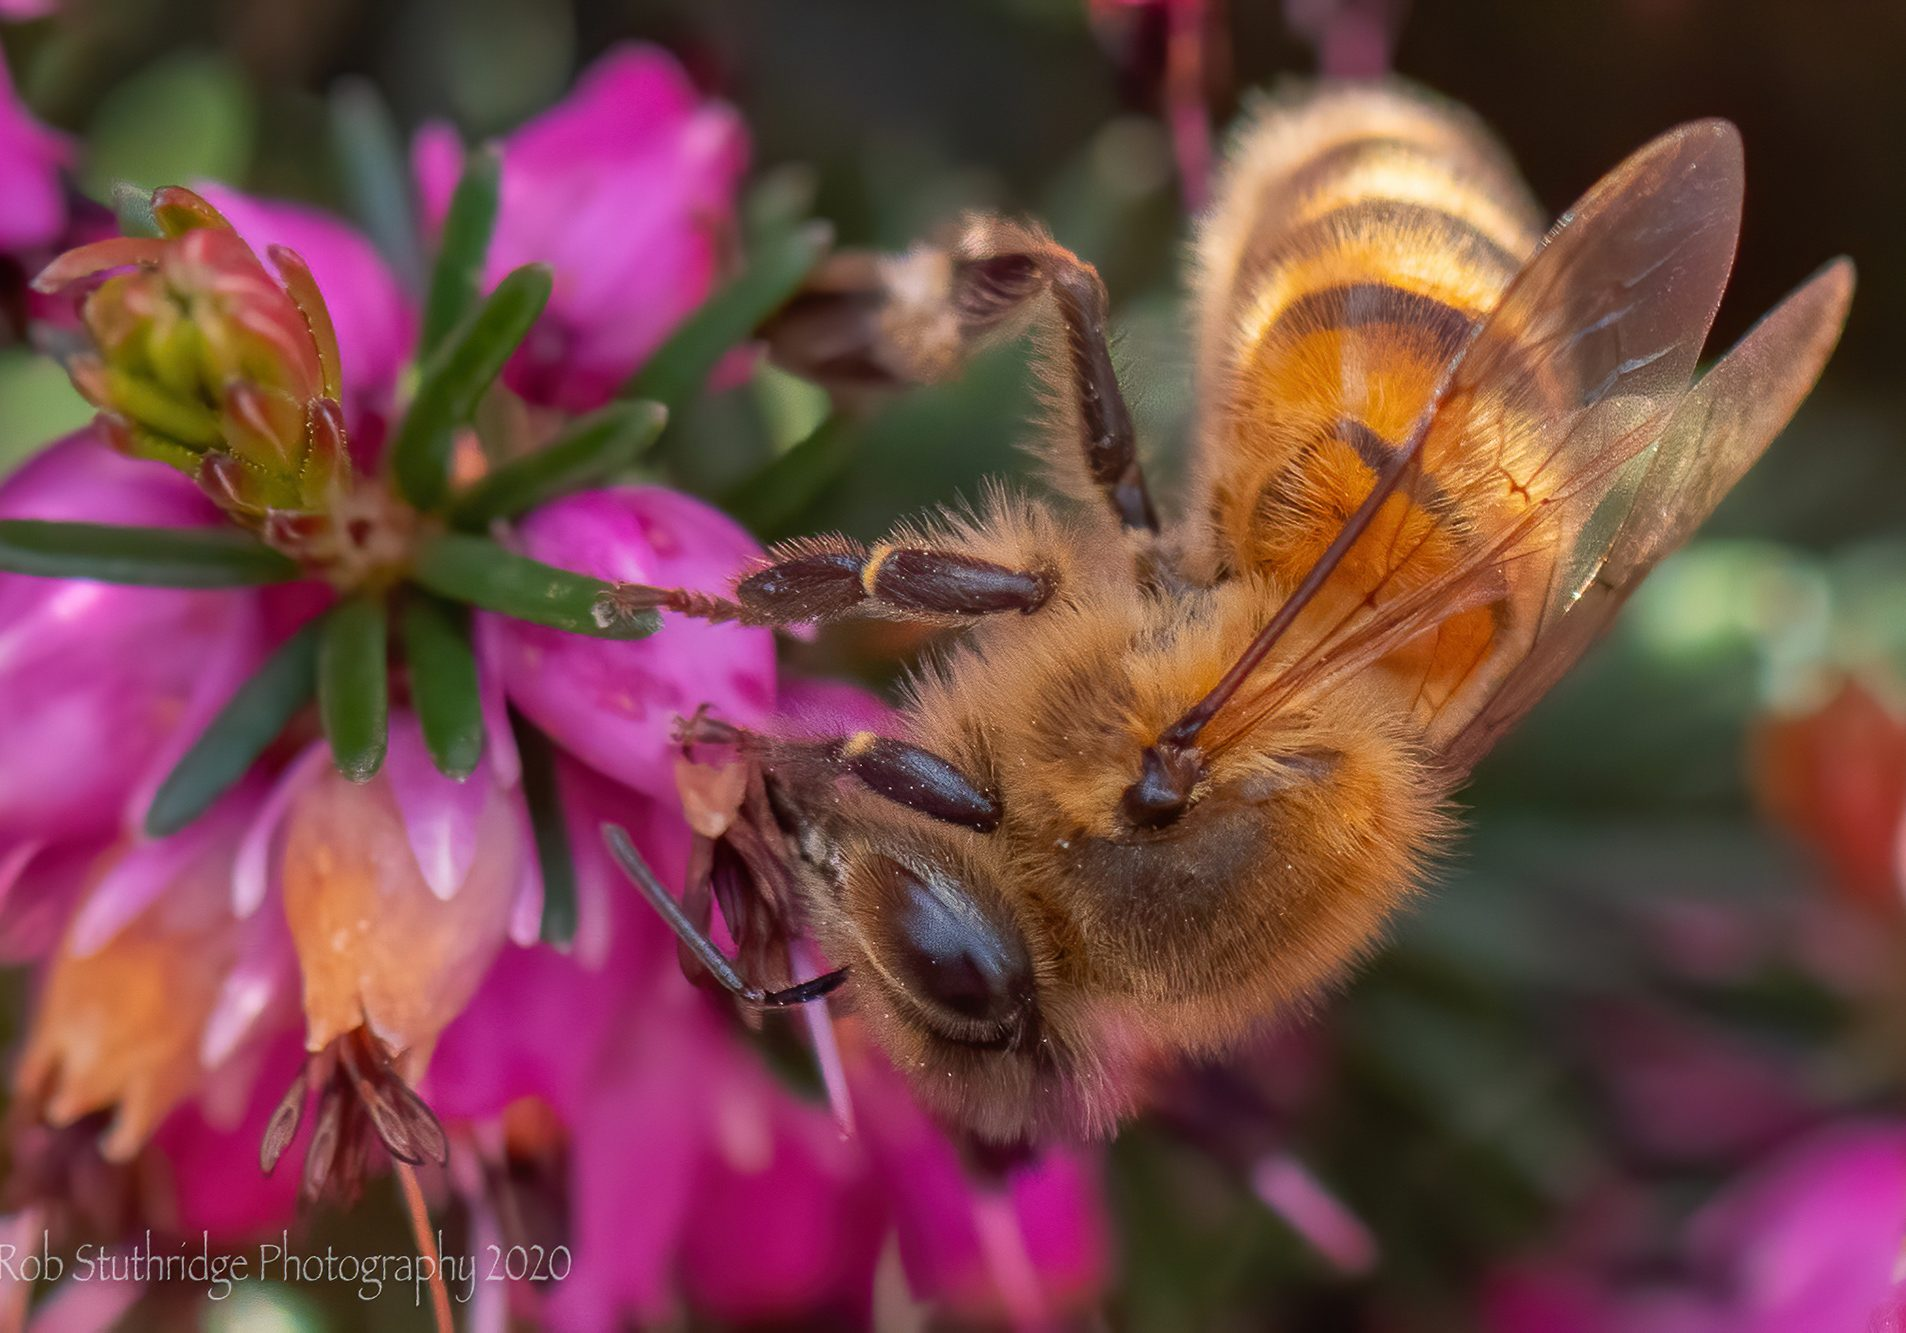 Honey Bee (Apis mellifera) on Erica Carnea, Barrow in Furness.